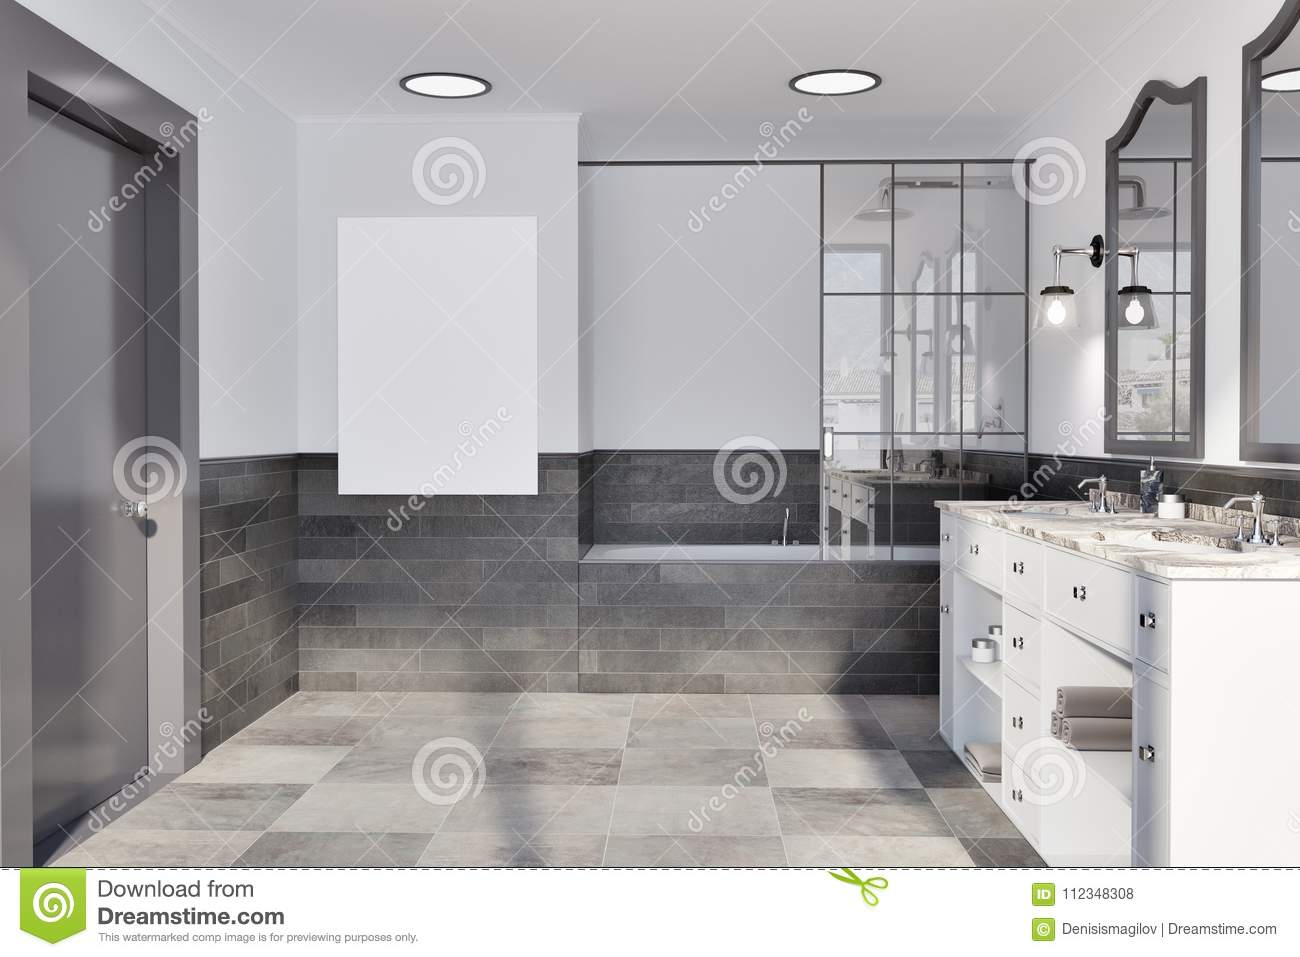 White And Brick Wall Bathroom, Poster Stock Illustration ...